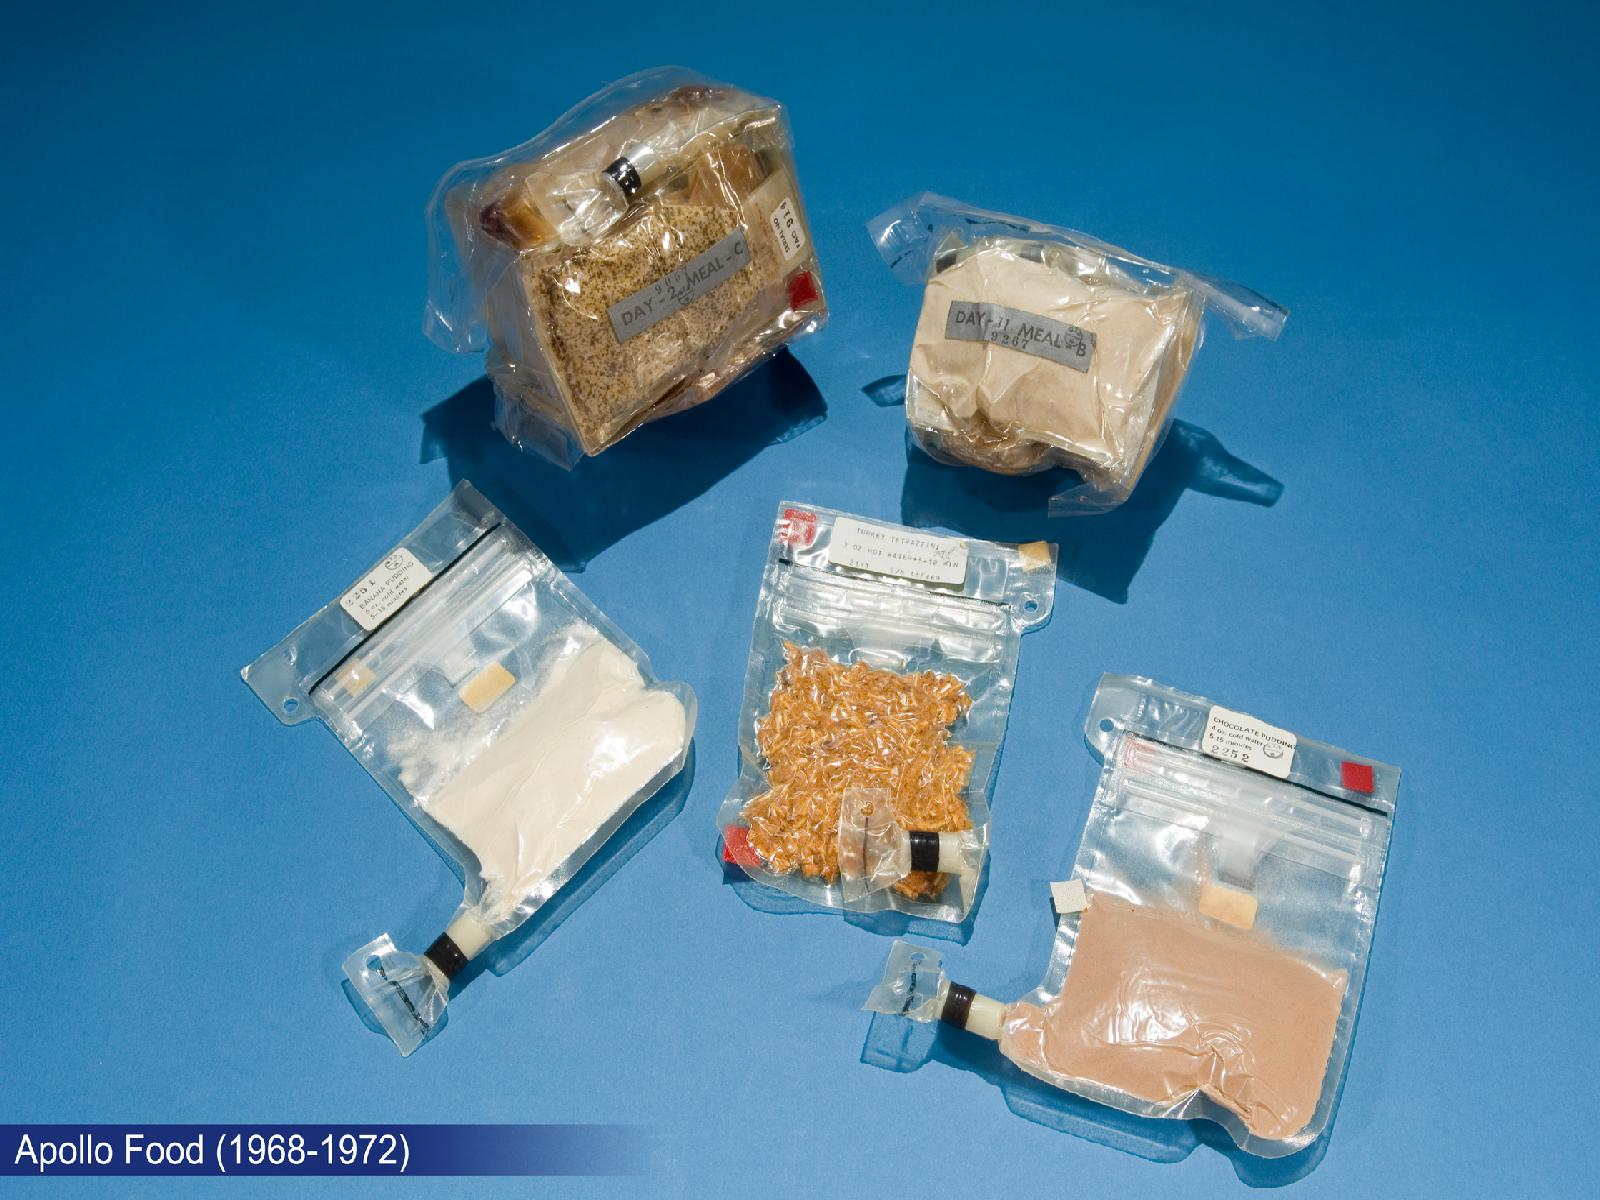 Space Food Evolution: How Astronaut Chow Has Changed (Photos)